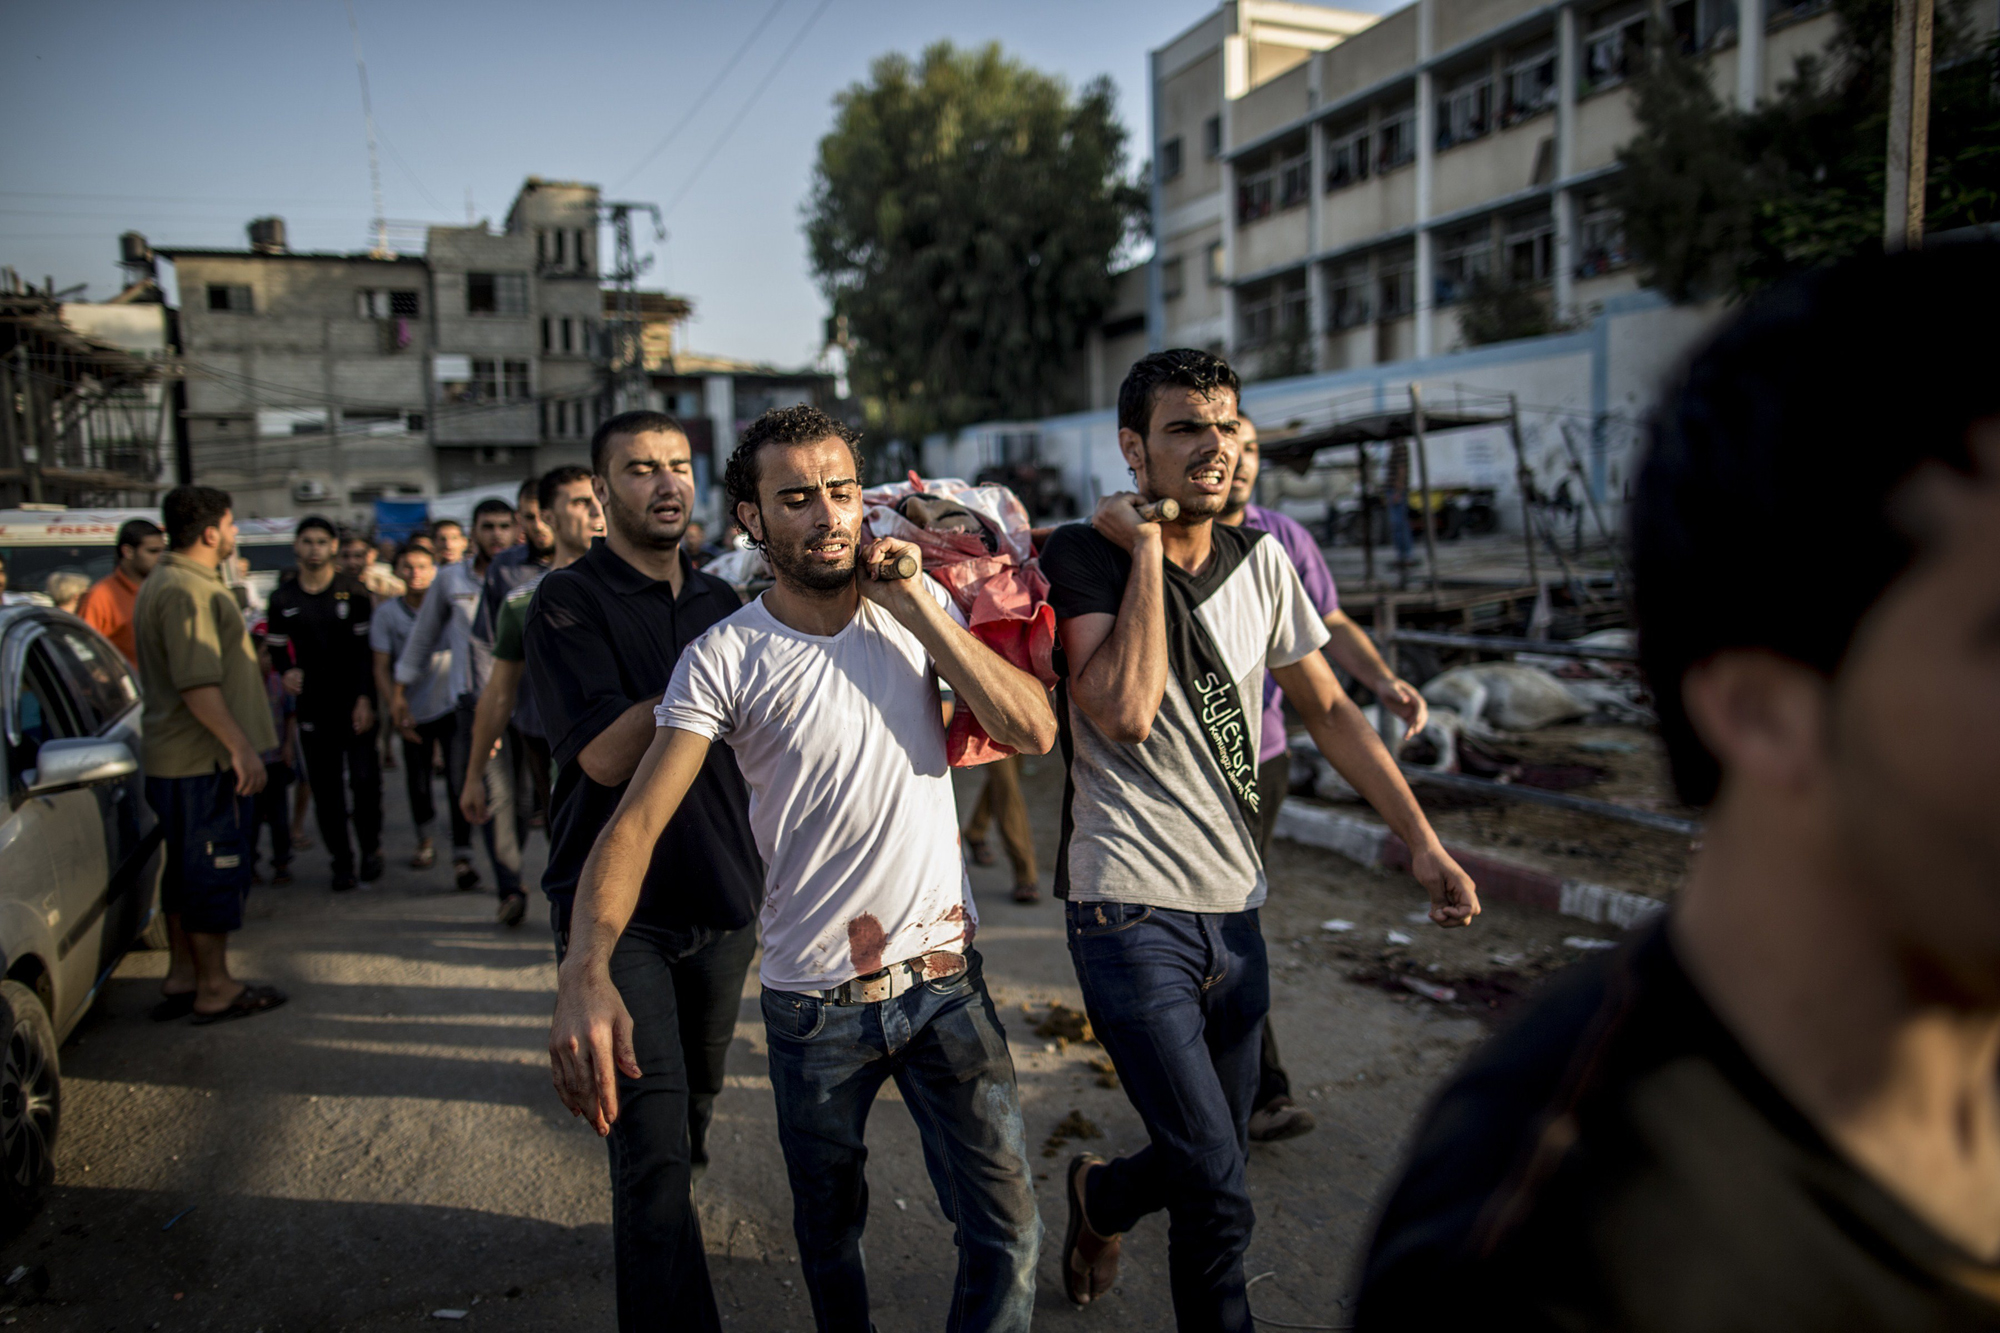 Palestinian mourners carry a body as they walk during a funeral procession past a UN school that was hit by Israeli shelling in the Jabalia refugee camp on July 30, 2014.